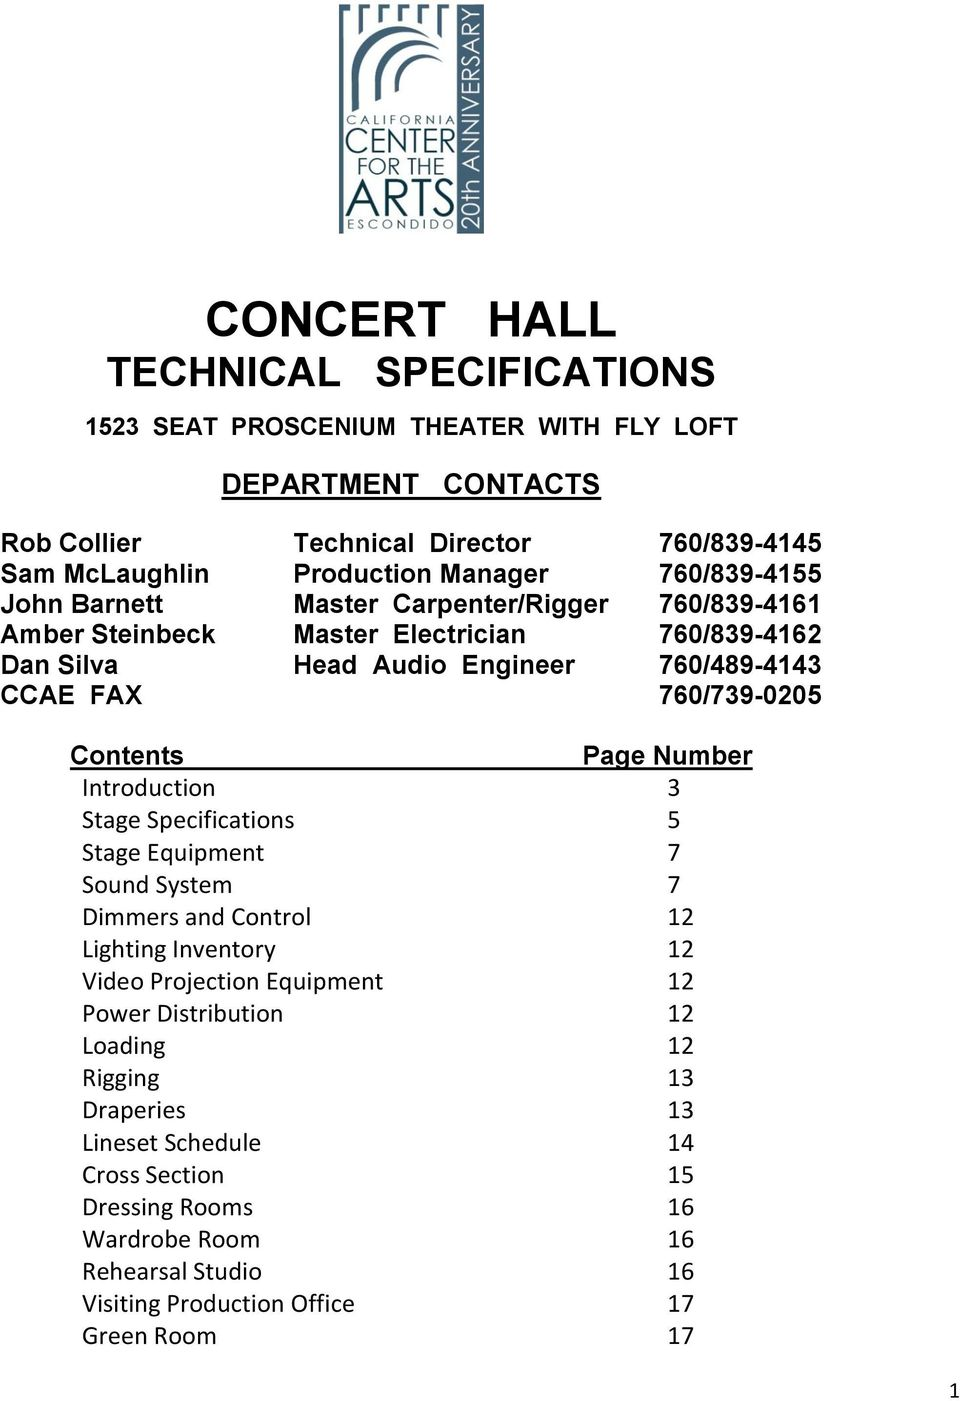 Contents Page Number Introduction 3 Stage Specifications 5 Stage Equipment 7 Sound System 7 Dimmers and Control 12 Lighting Inventory 12 Video Projection Equipment 12 Power